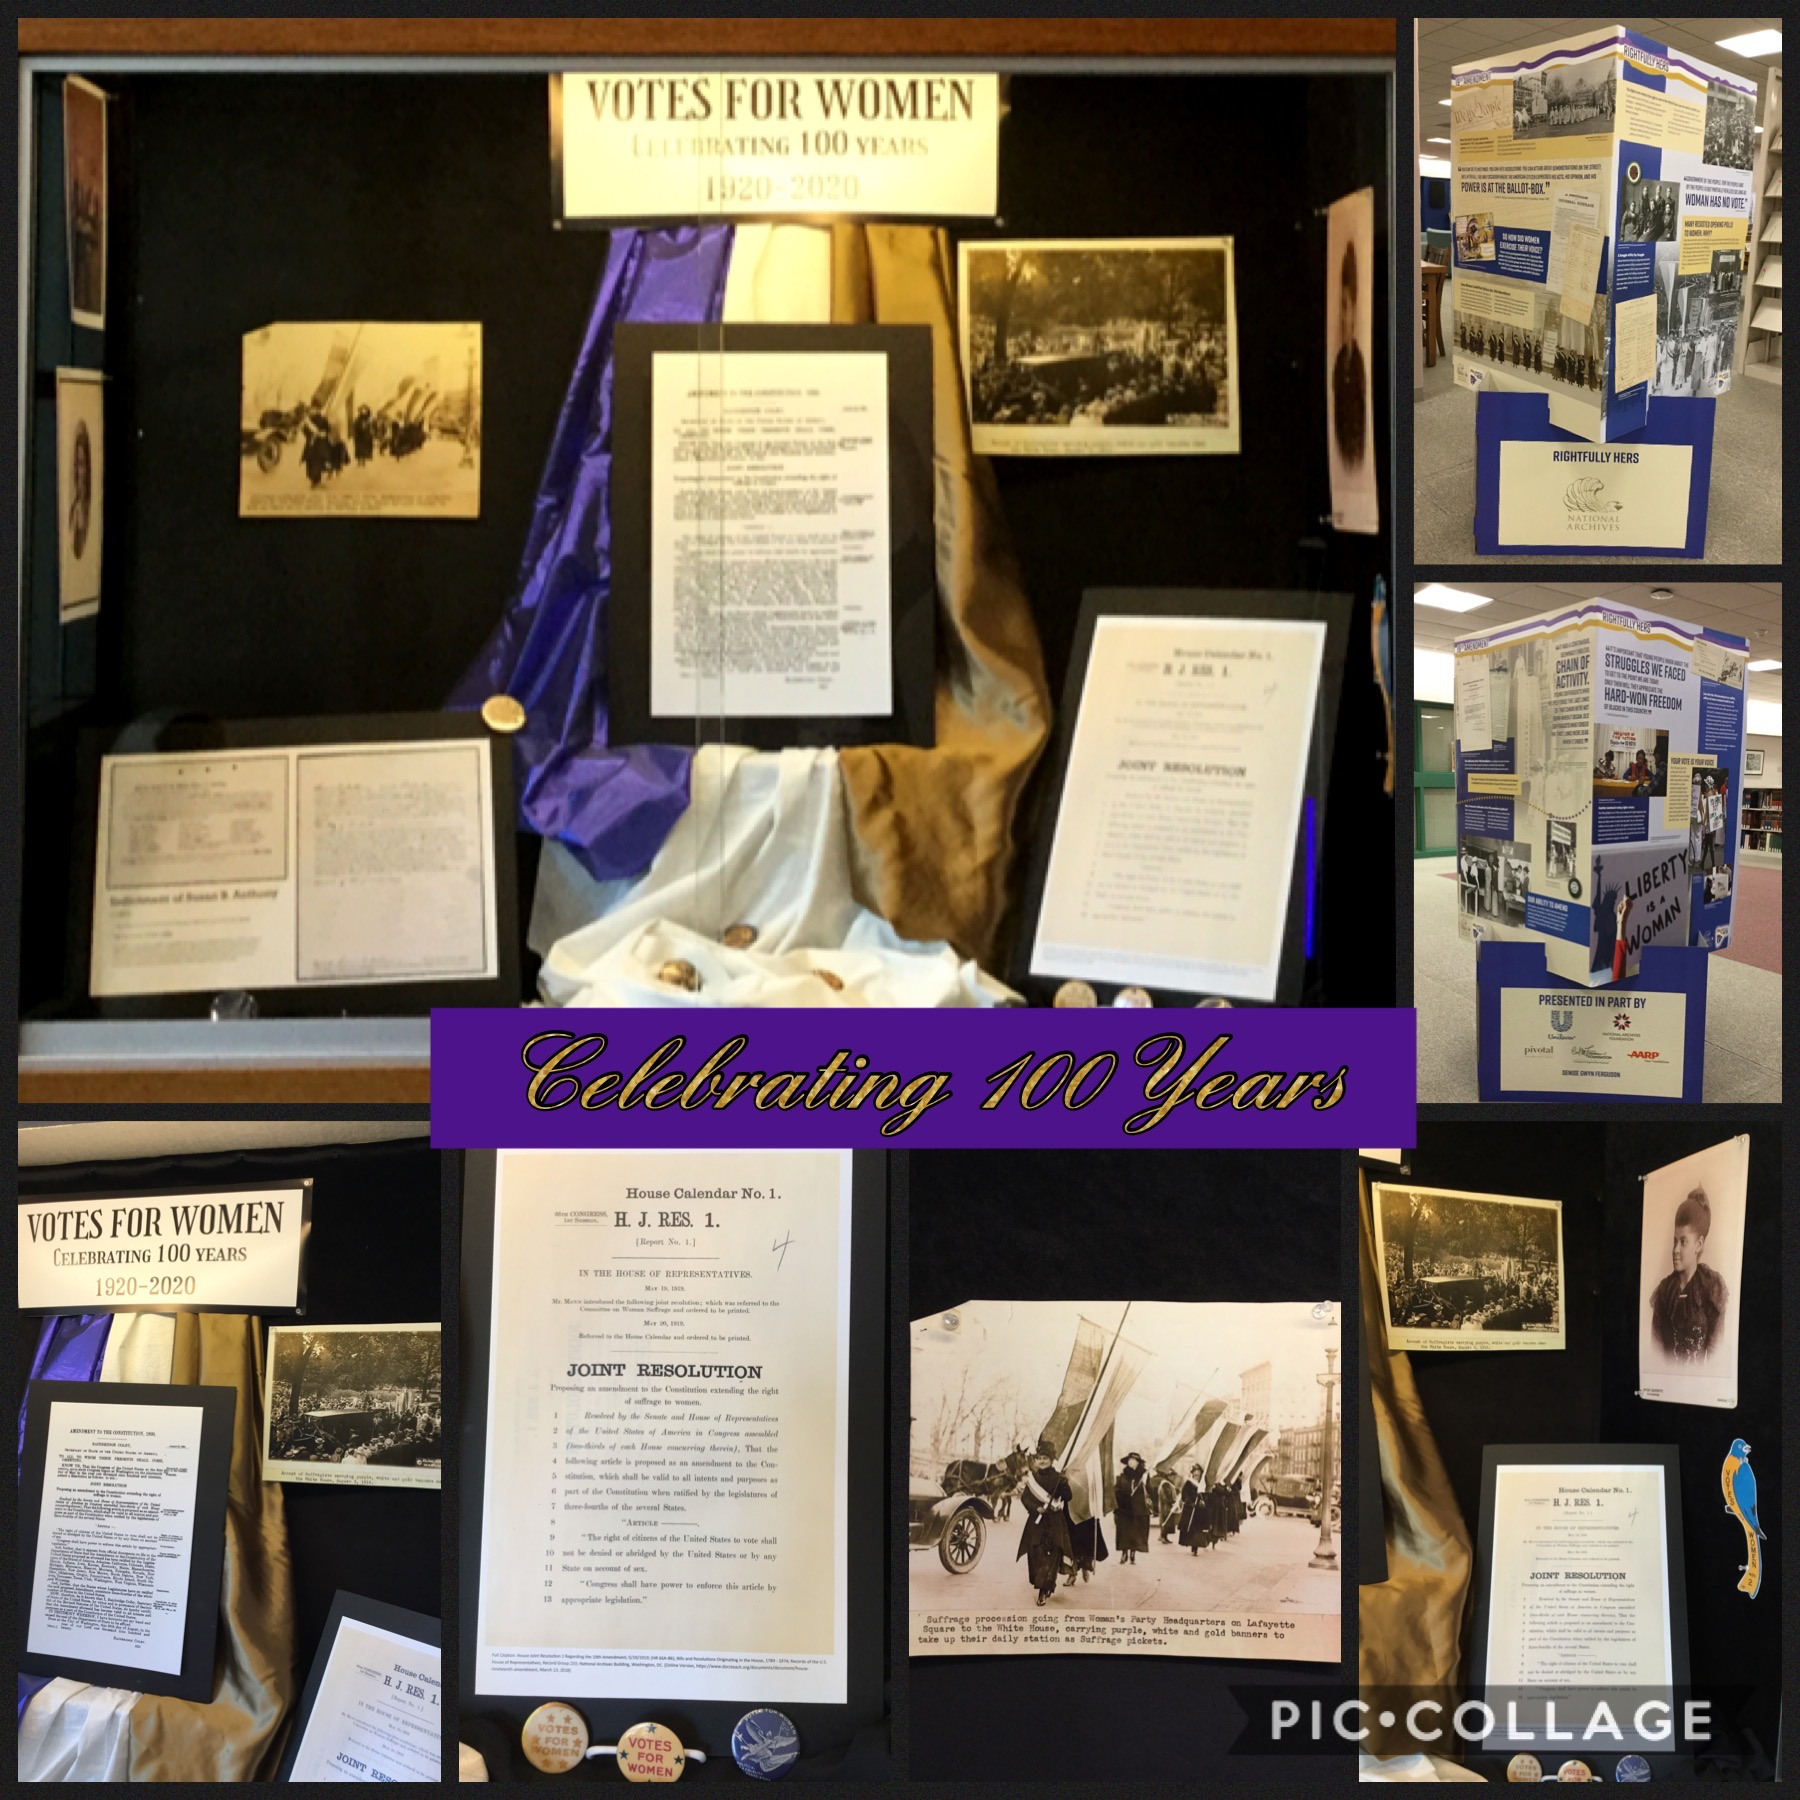 Collage of foyer display and pop-up display celebrating women's right to vote